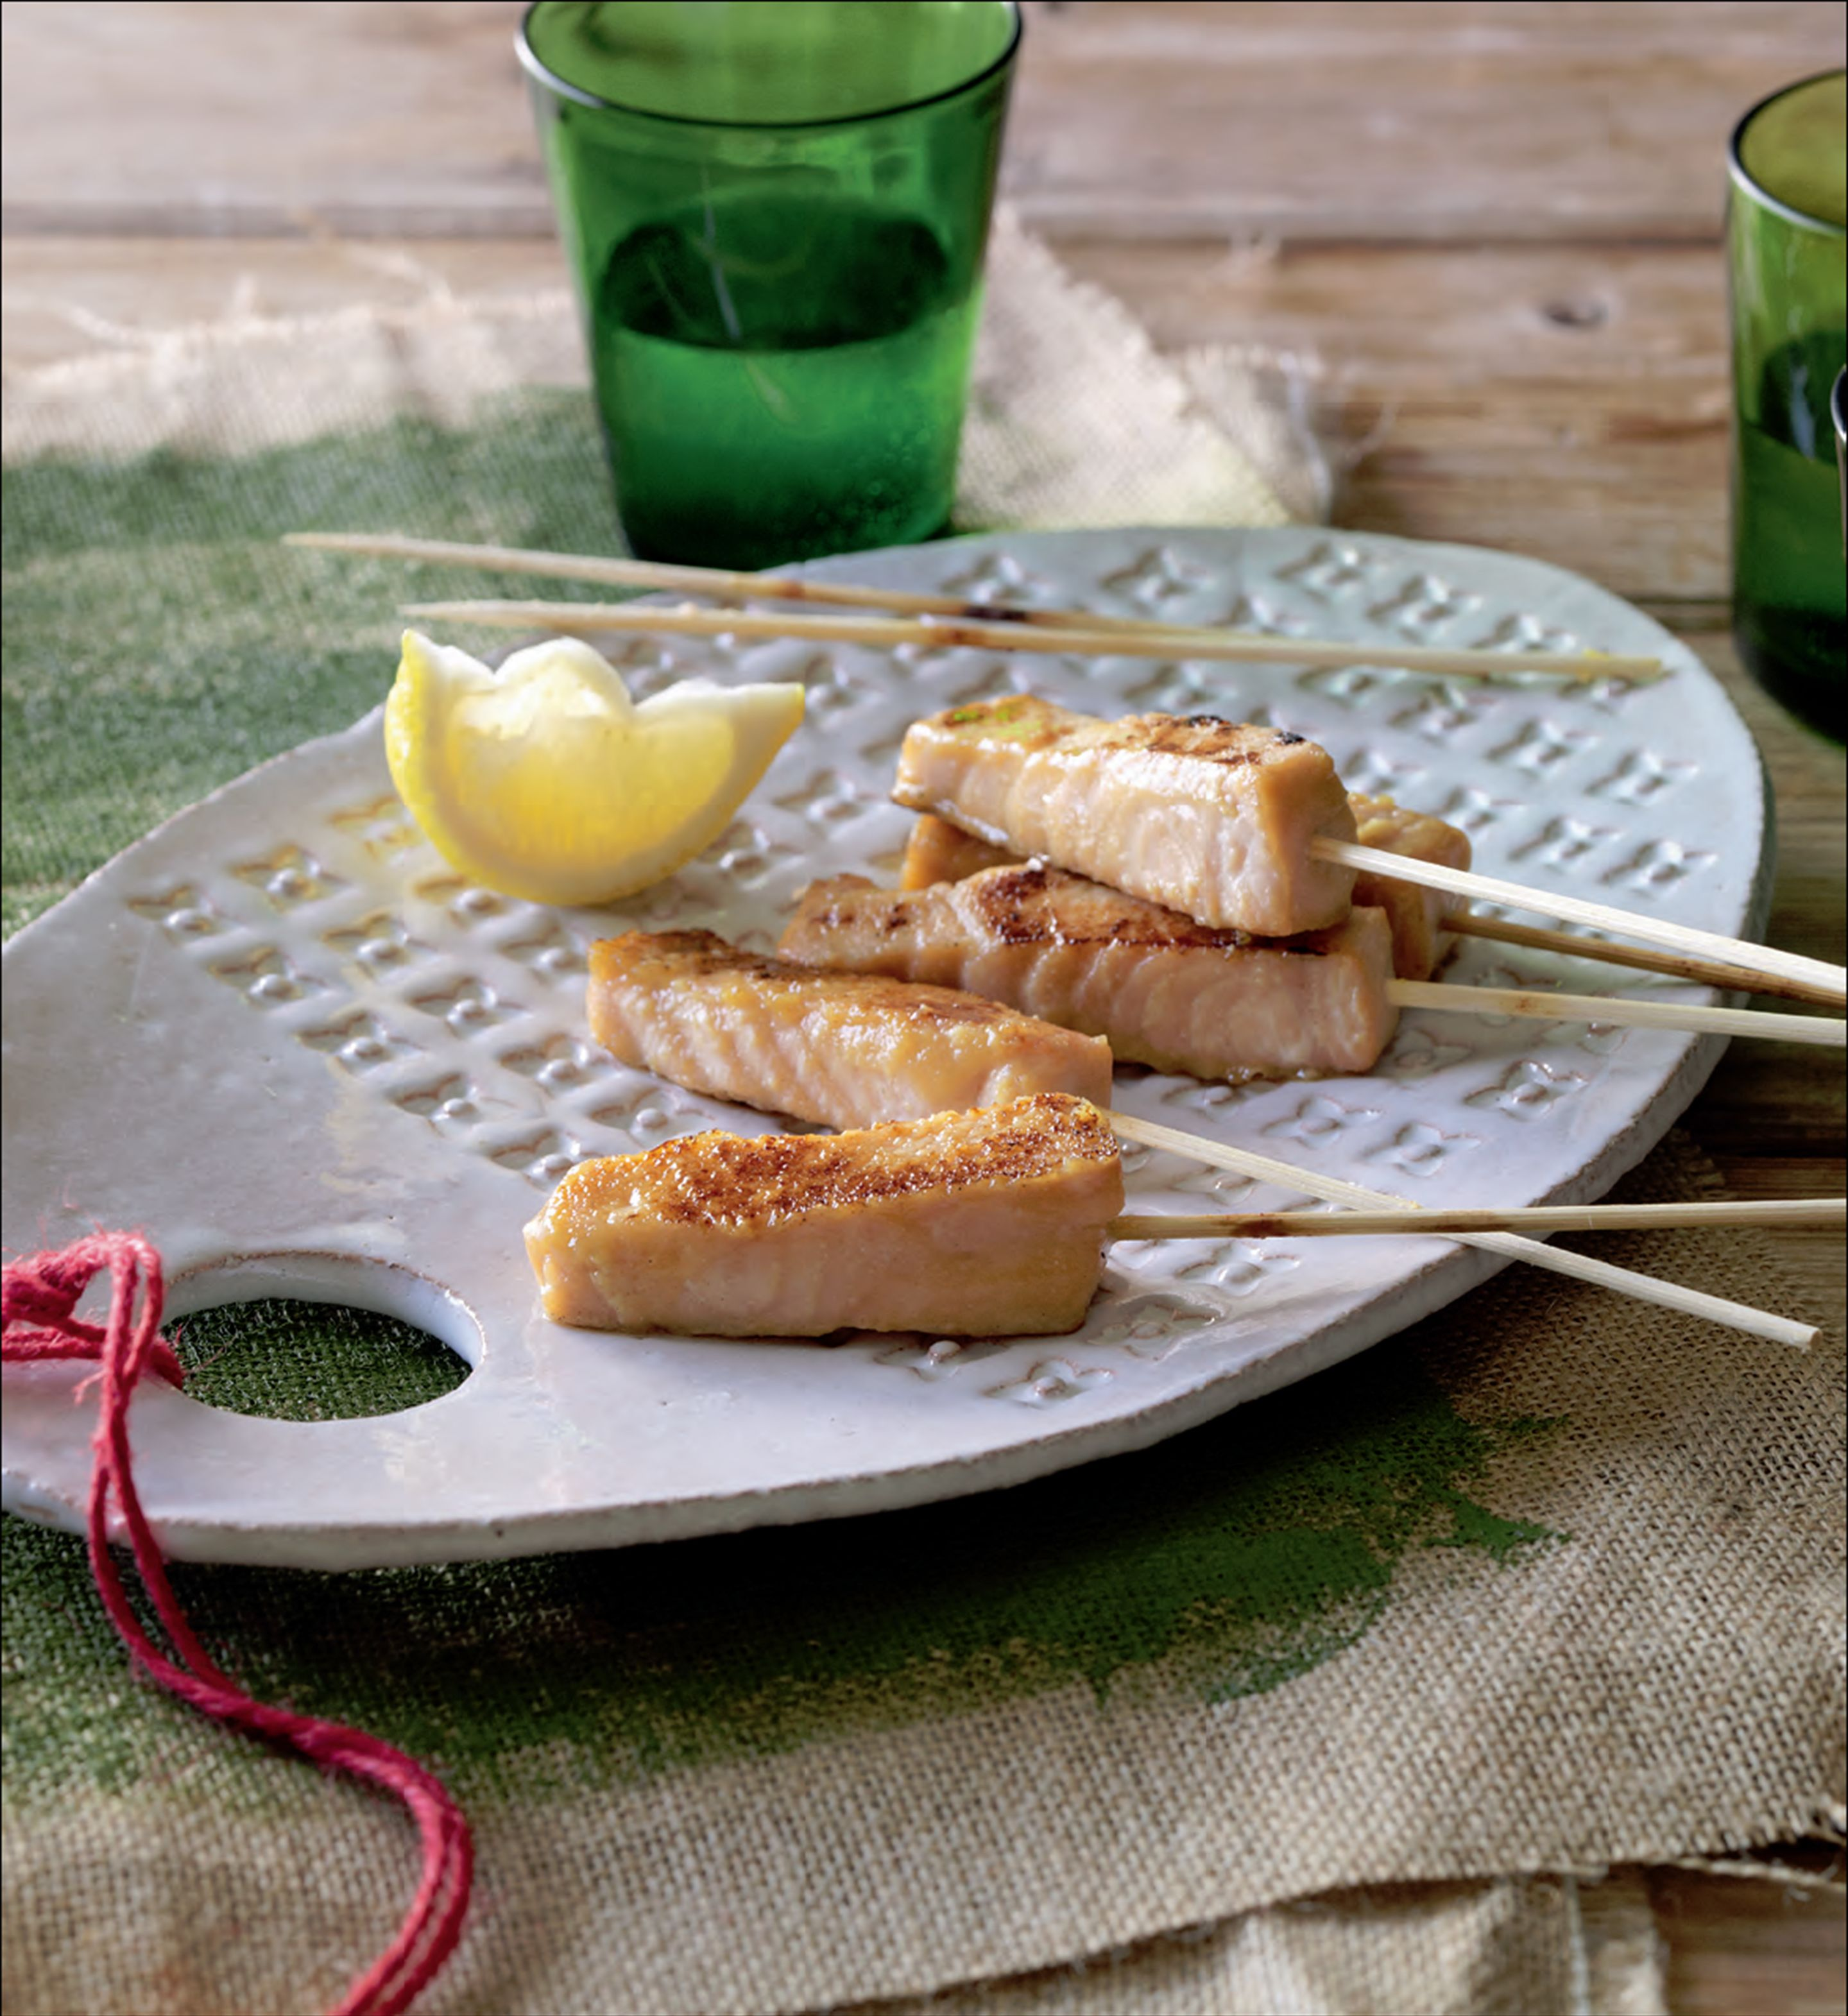 Miso-glazed salmon skewers